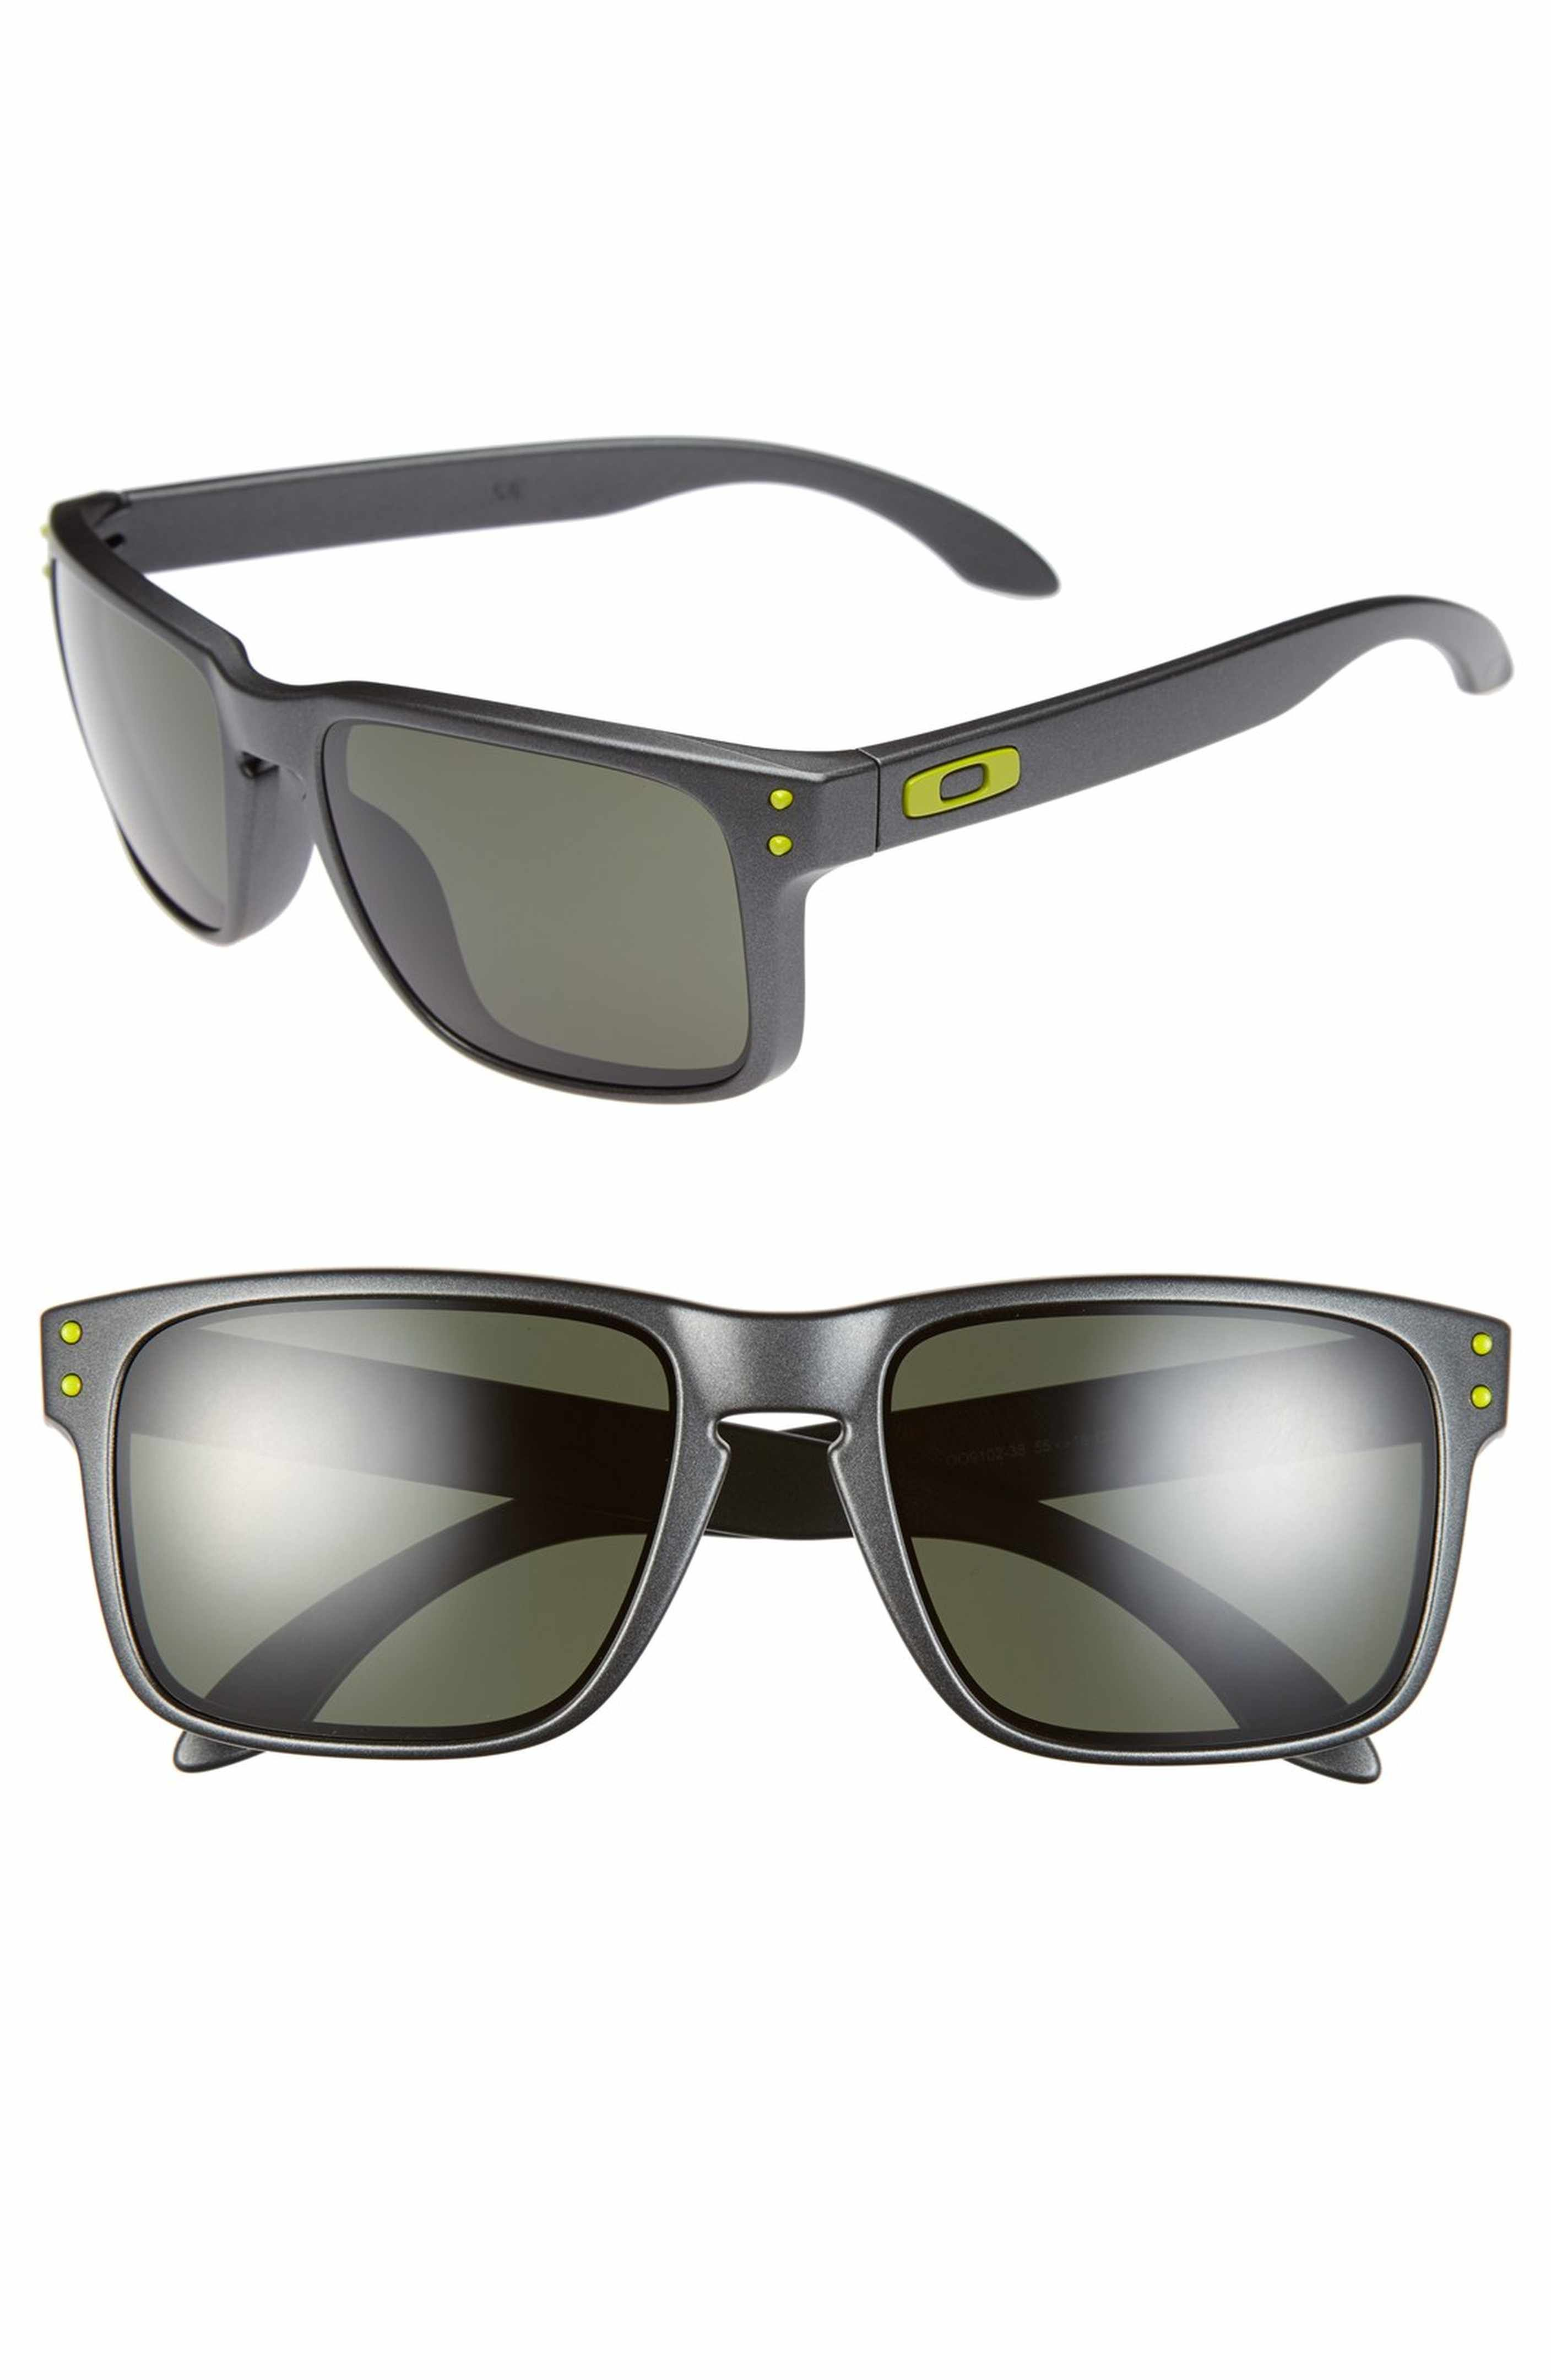 7389aa769f385 Main Image - Oakley  Holbrook  55mm Sunglasses - Sale! Up to 75% OFF! Shop  at Stylizio for women s and men s designer handbags